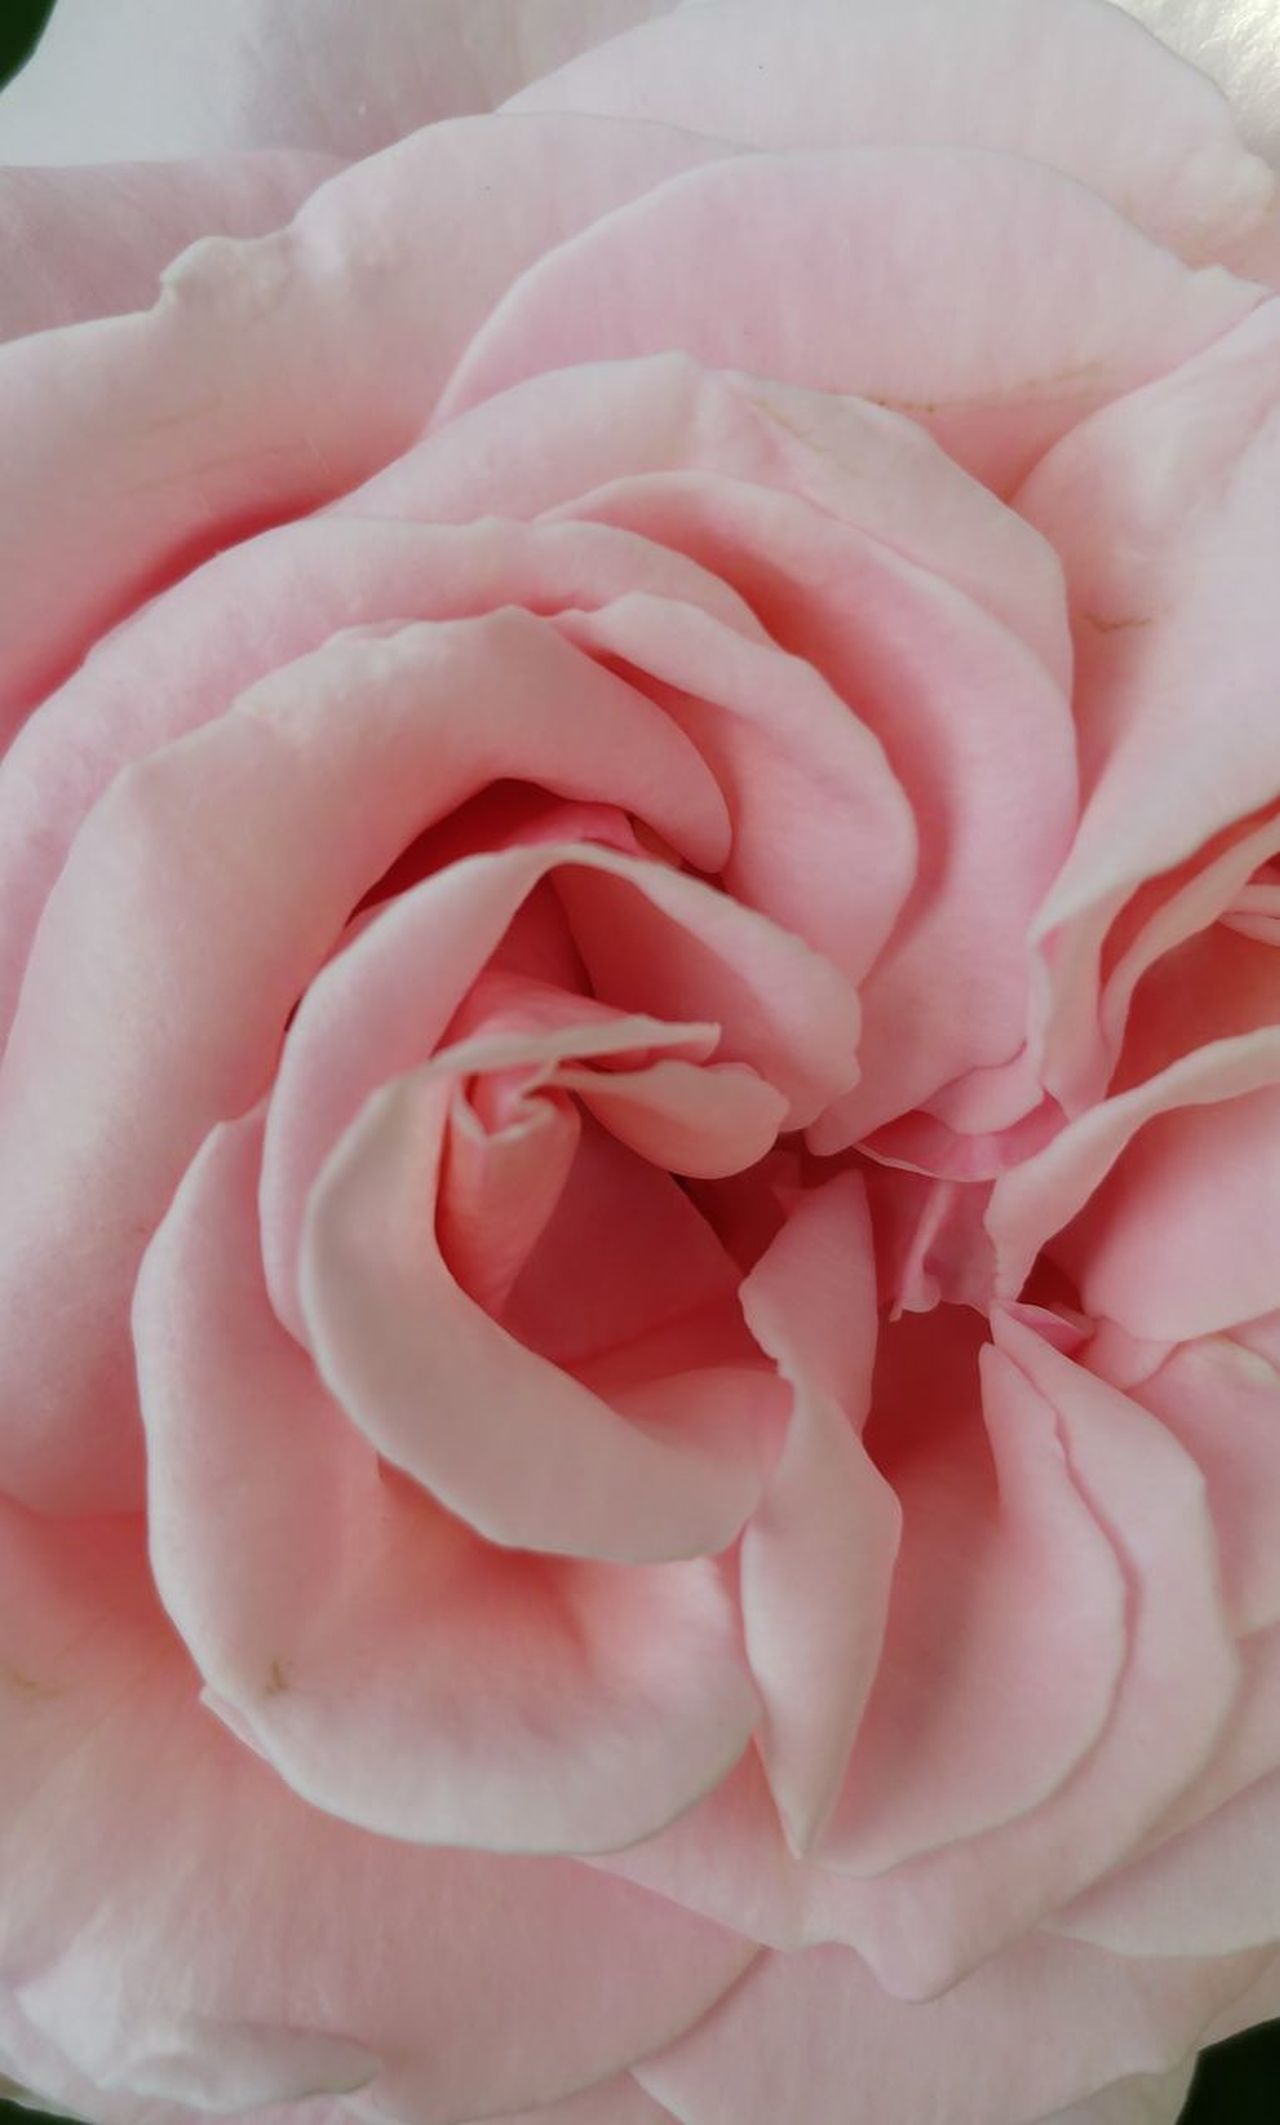 Pink Color Flower Petal Rose - Flower Nature Backgrounds Full Frame Plant Abstract Fragility Flower Head Textured  Beauty In Nature Peony  No People Pastel Colored Rose Petals Close-up Freshness Day